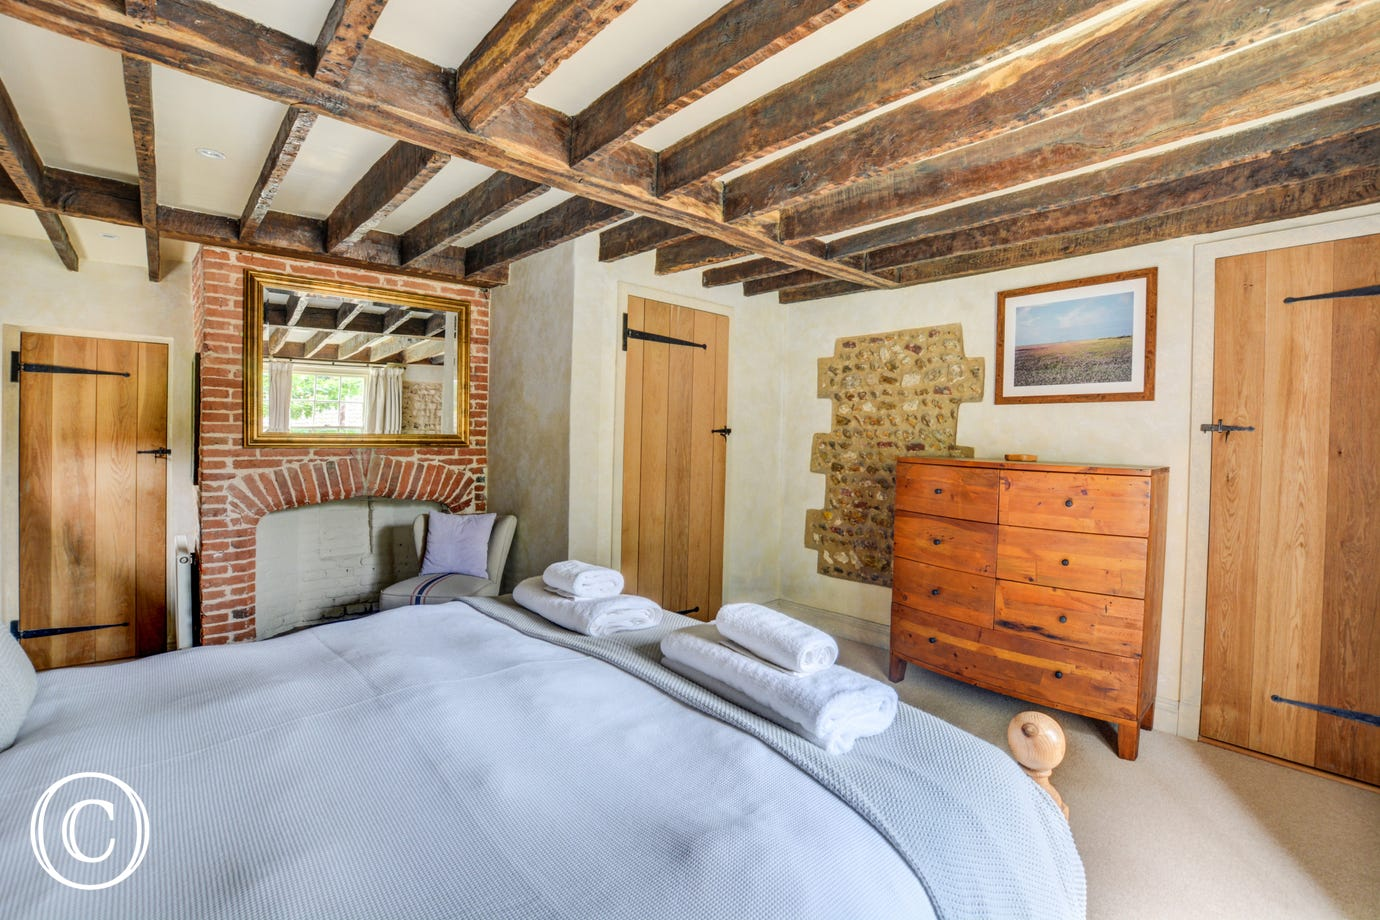 Very spacious bedroom with lots of storage and the added convenience of an en suite shower room